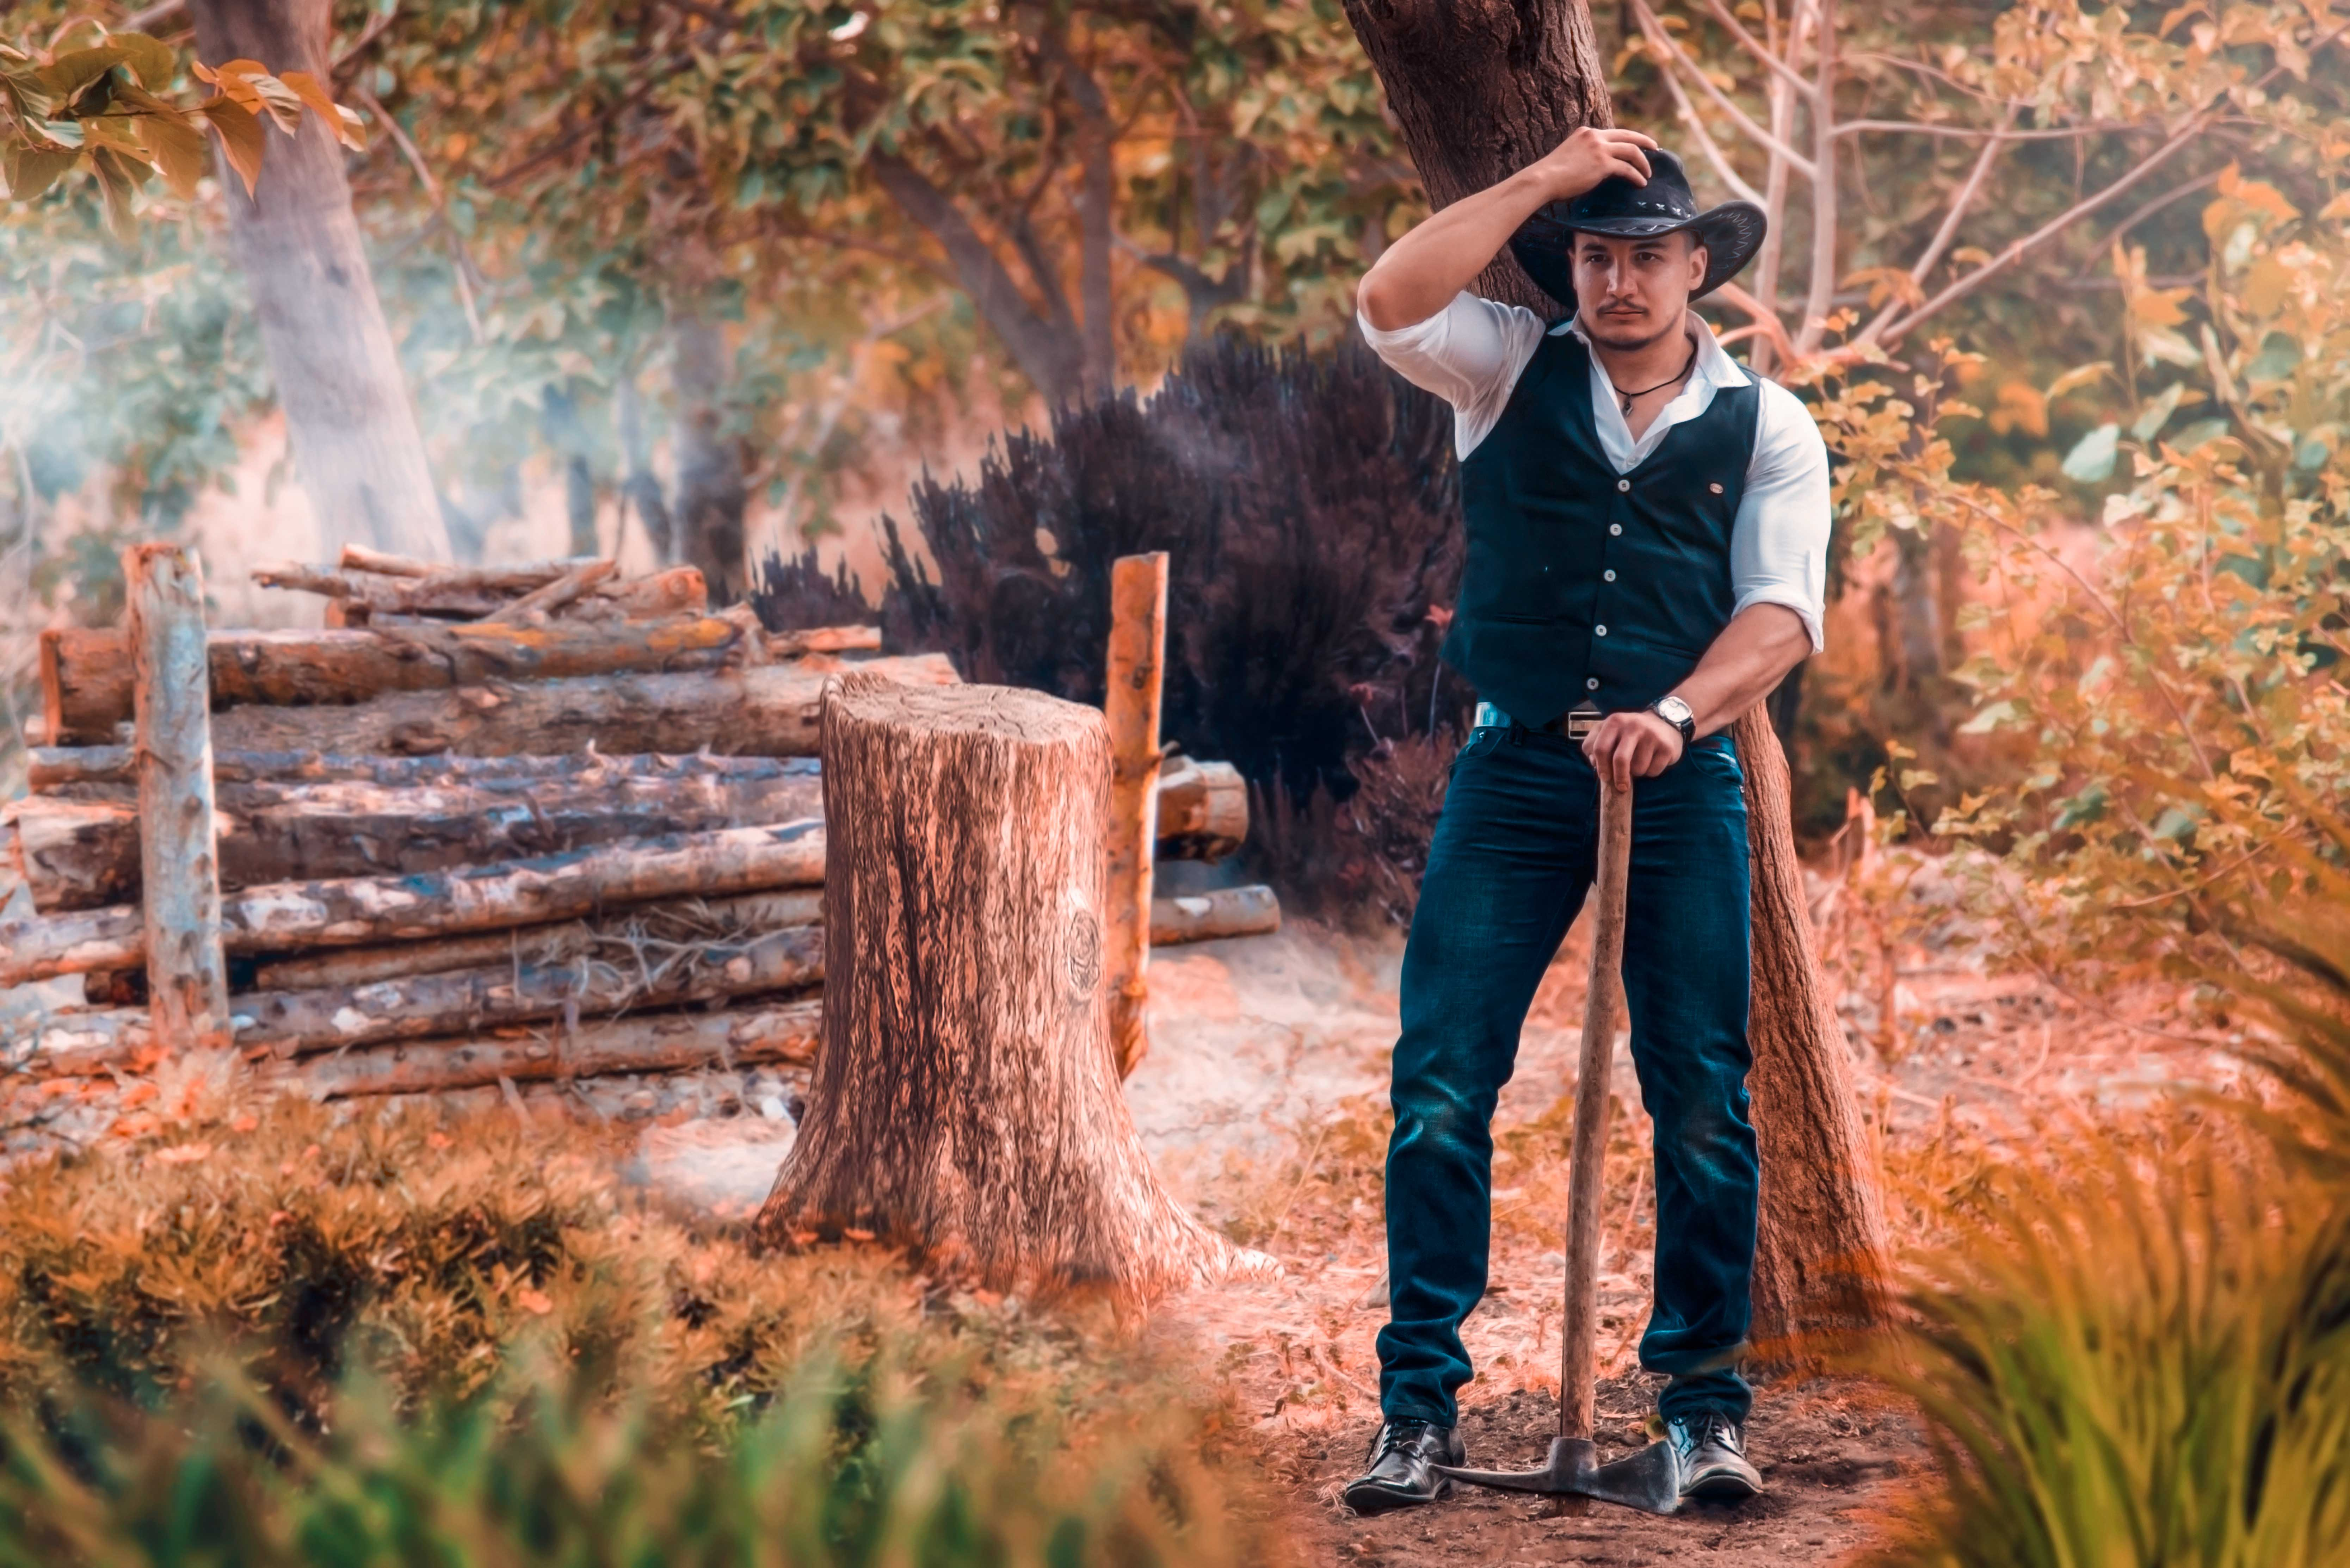 Country man 2